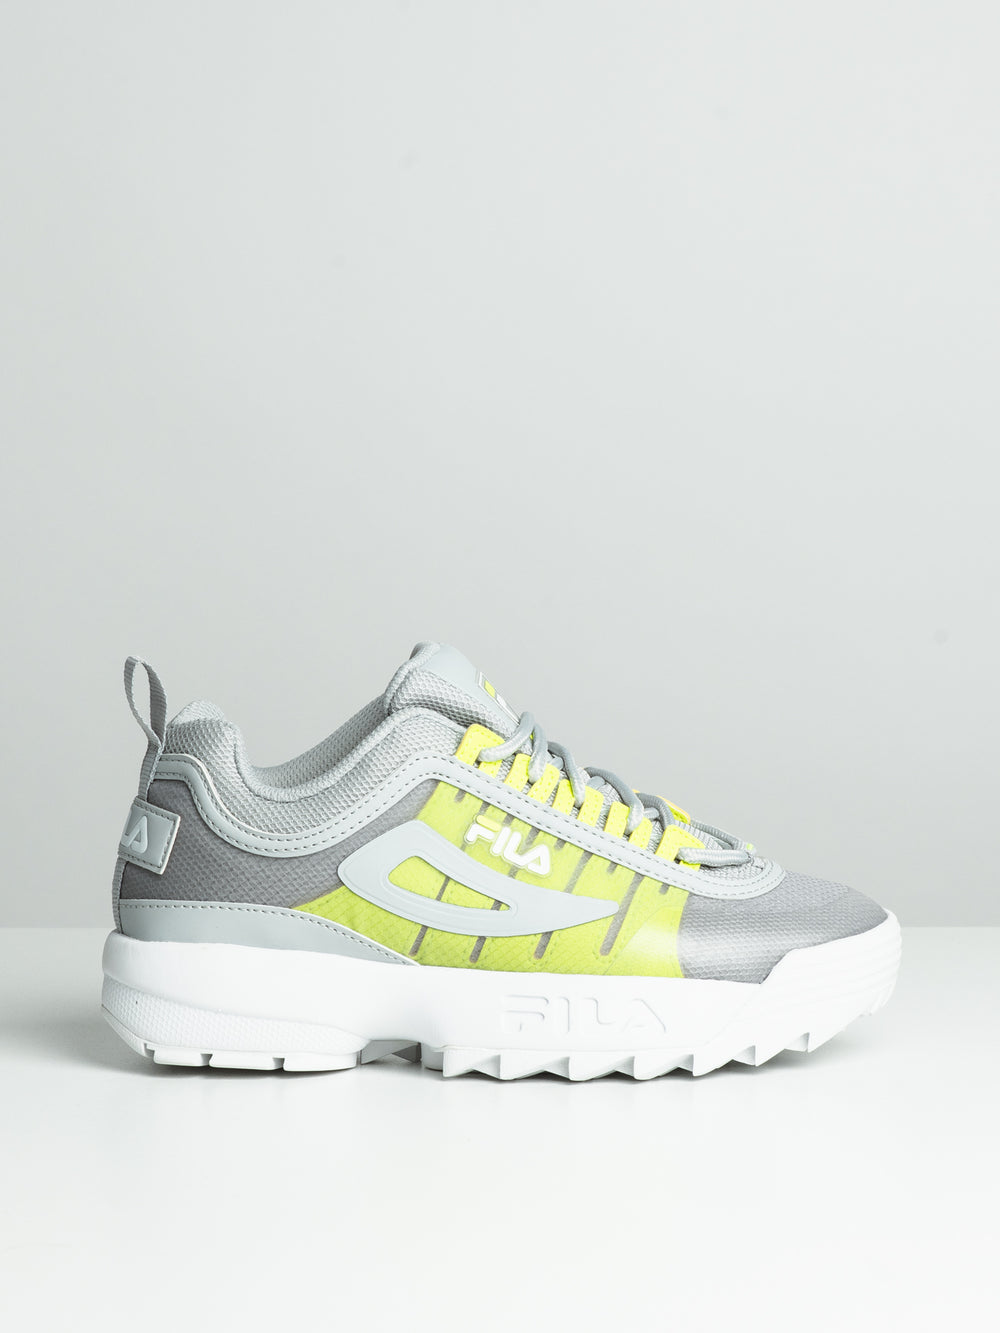 WOMENS DISRUPTOR II MONOMESH - GREY